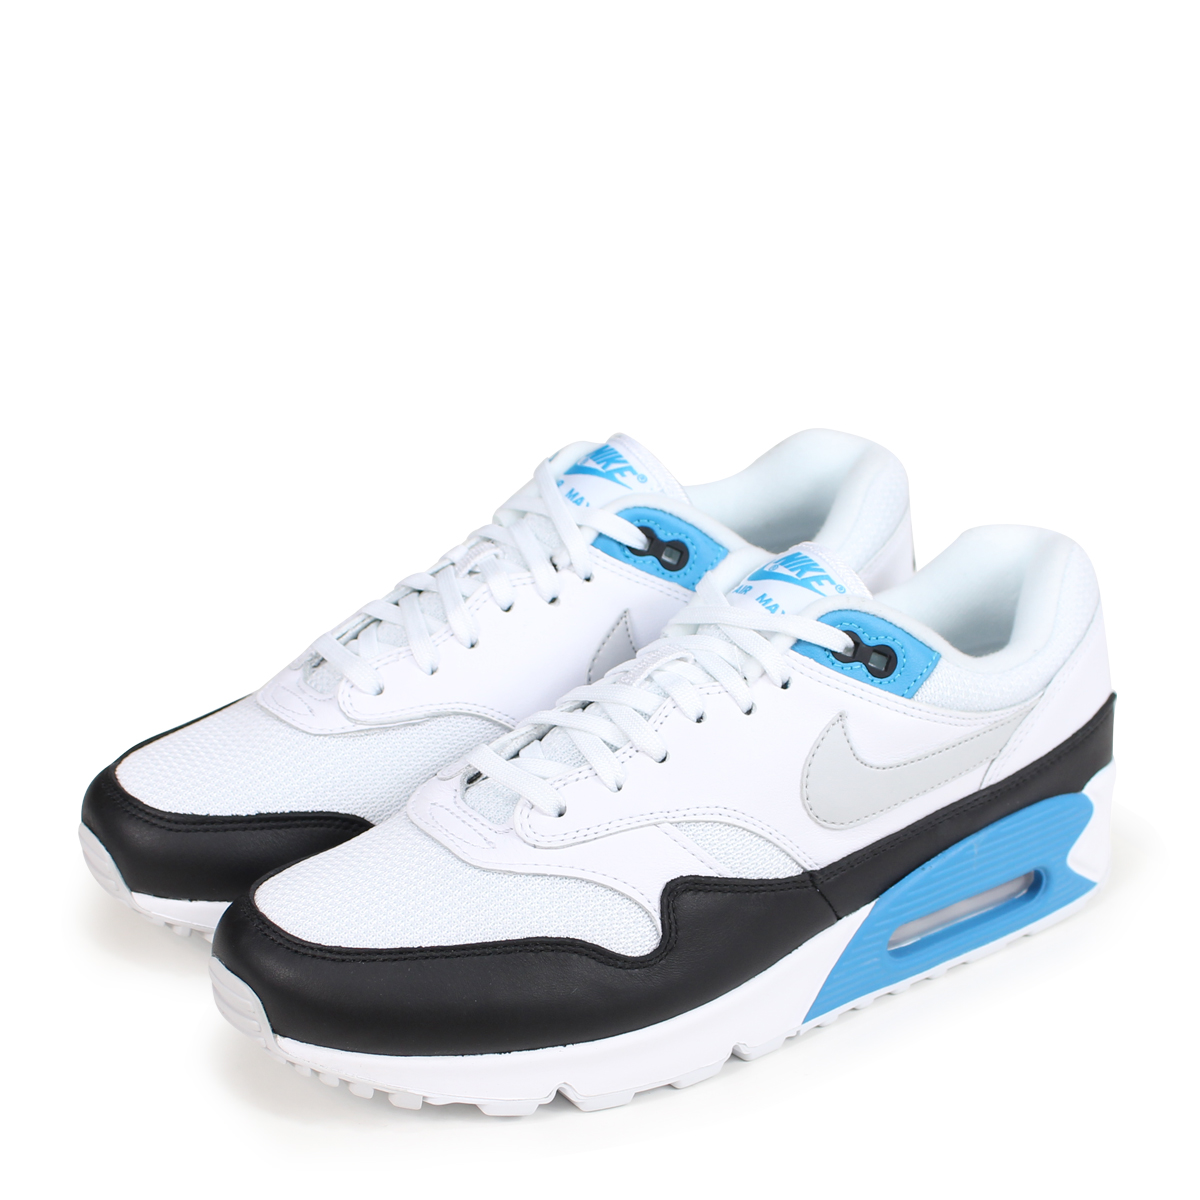 ALLSPORTS | Rakuten Global Market: NIKE AIR MAX 90/1 Kie Ney AMAX 90 1 sneakers men AJ7695-104 white [load planned Shinnyu load in reservation product 8/18 containing] [188]